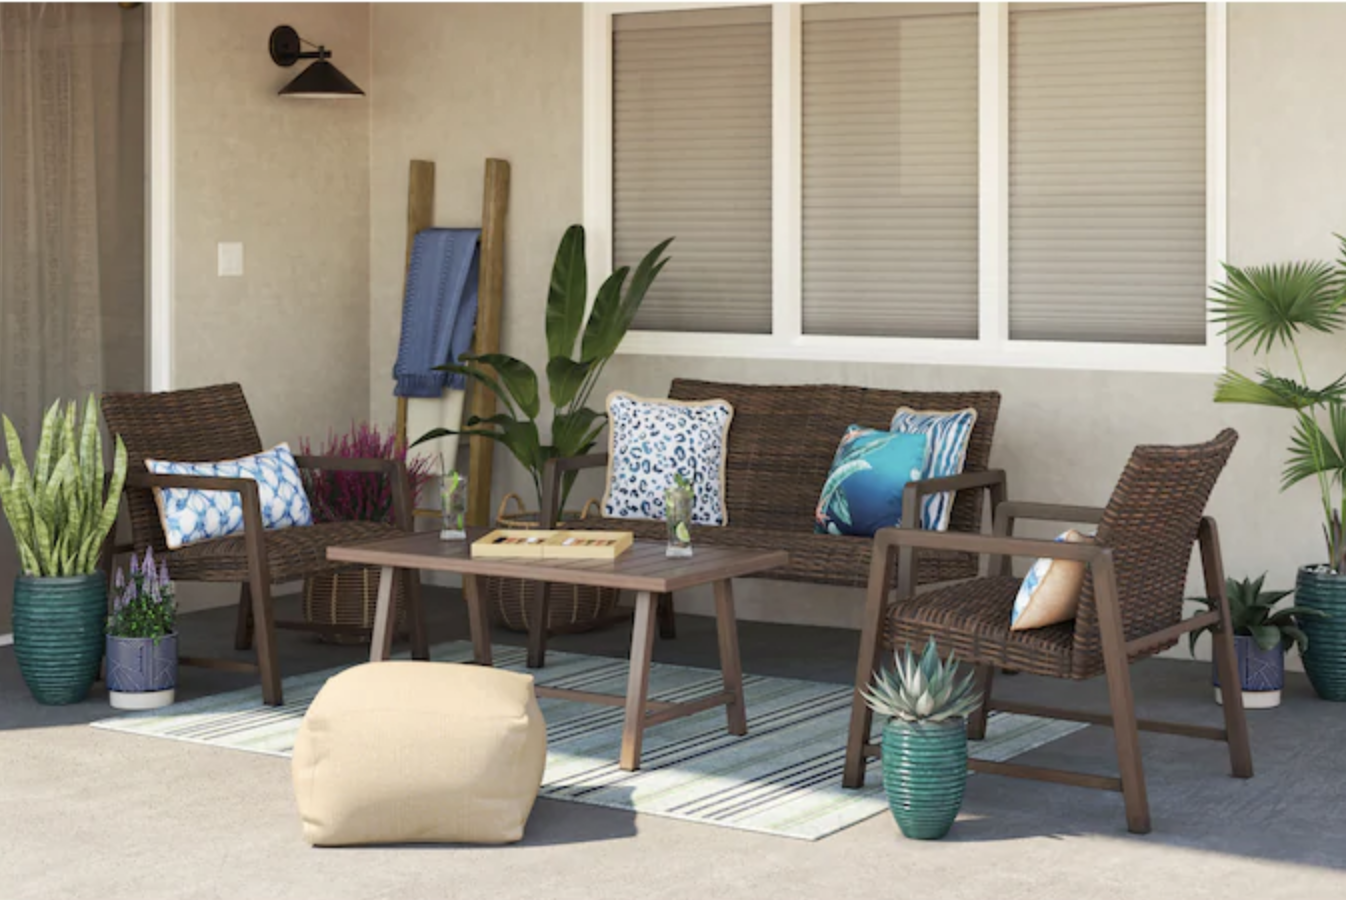 the four-piece patio set with patterned blue cushions